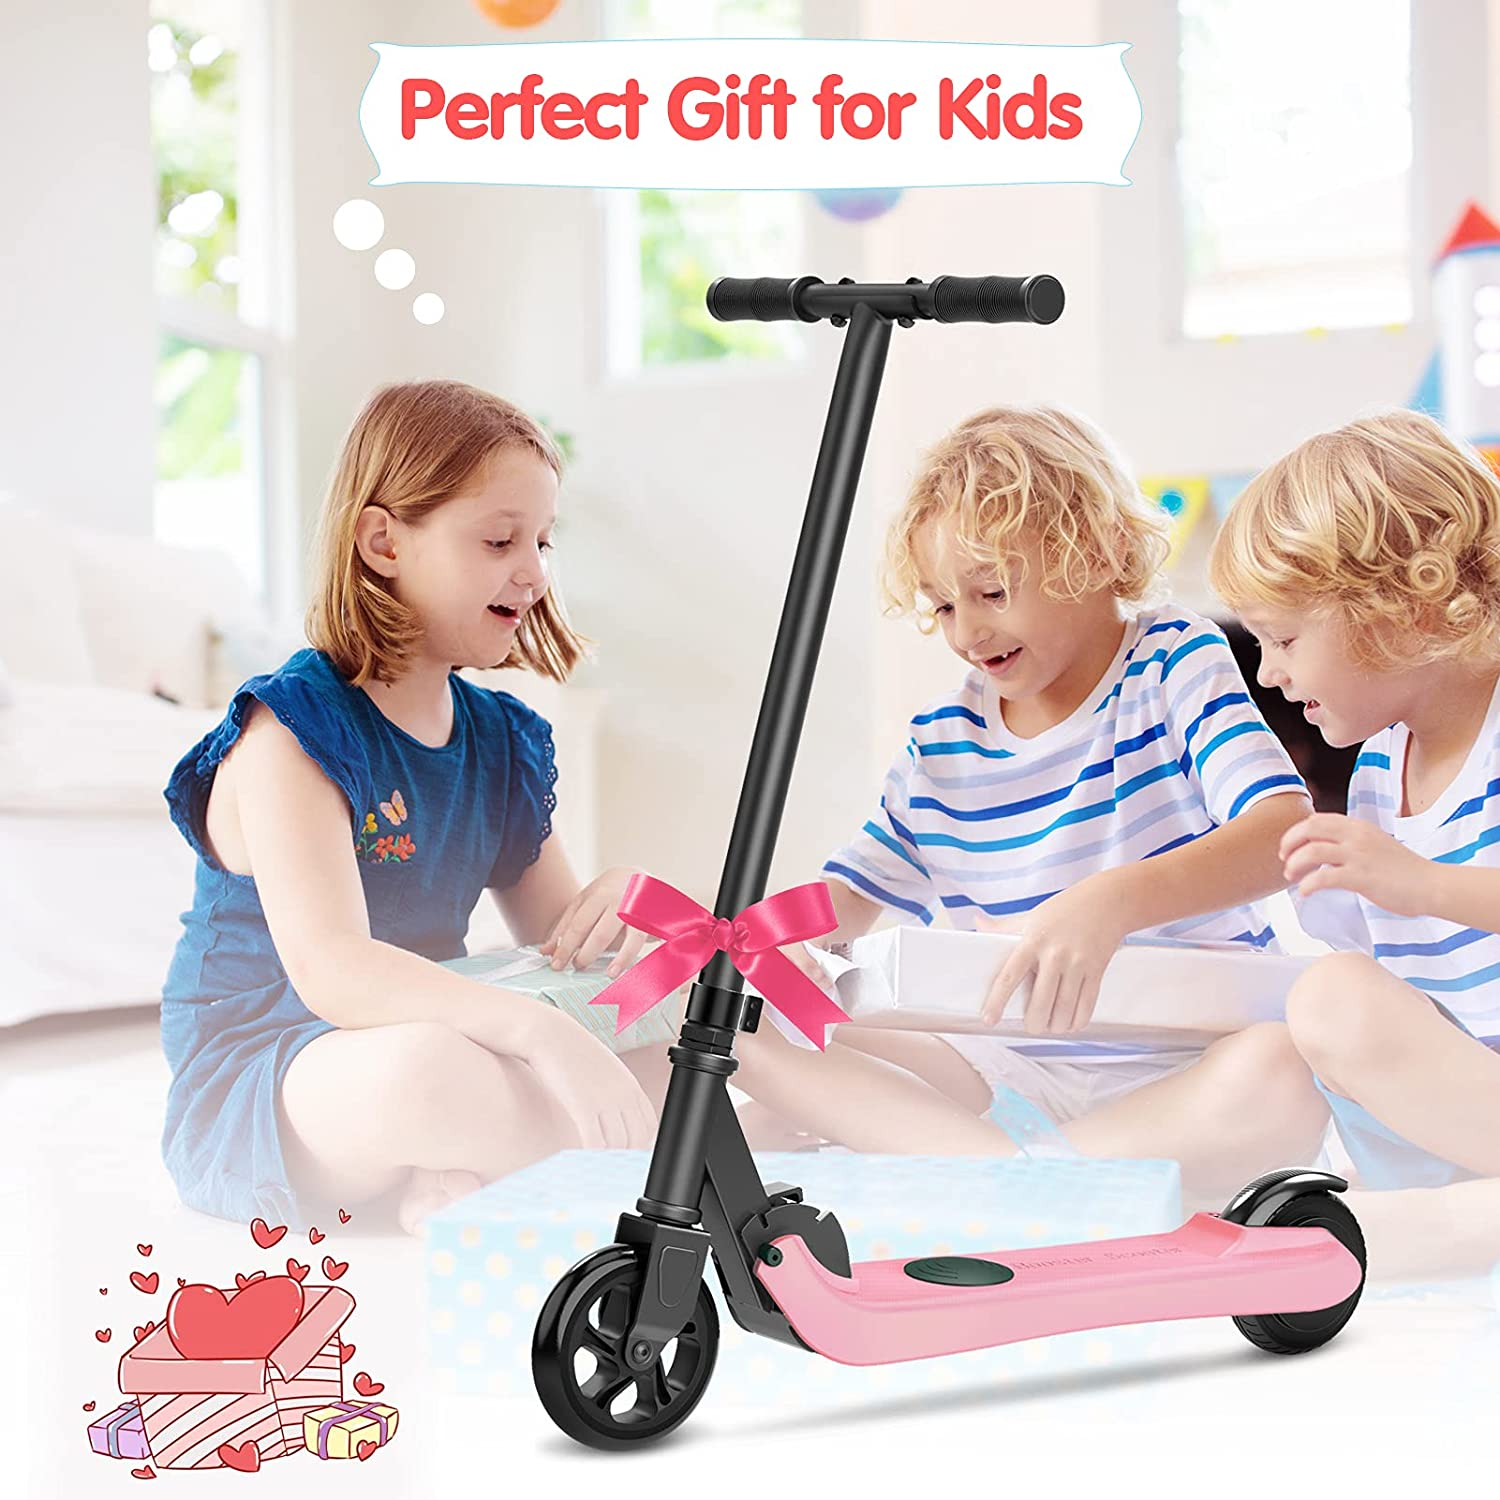 Best Gifts for Boys & Girls